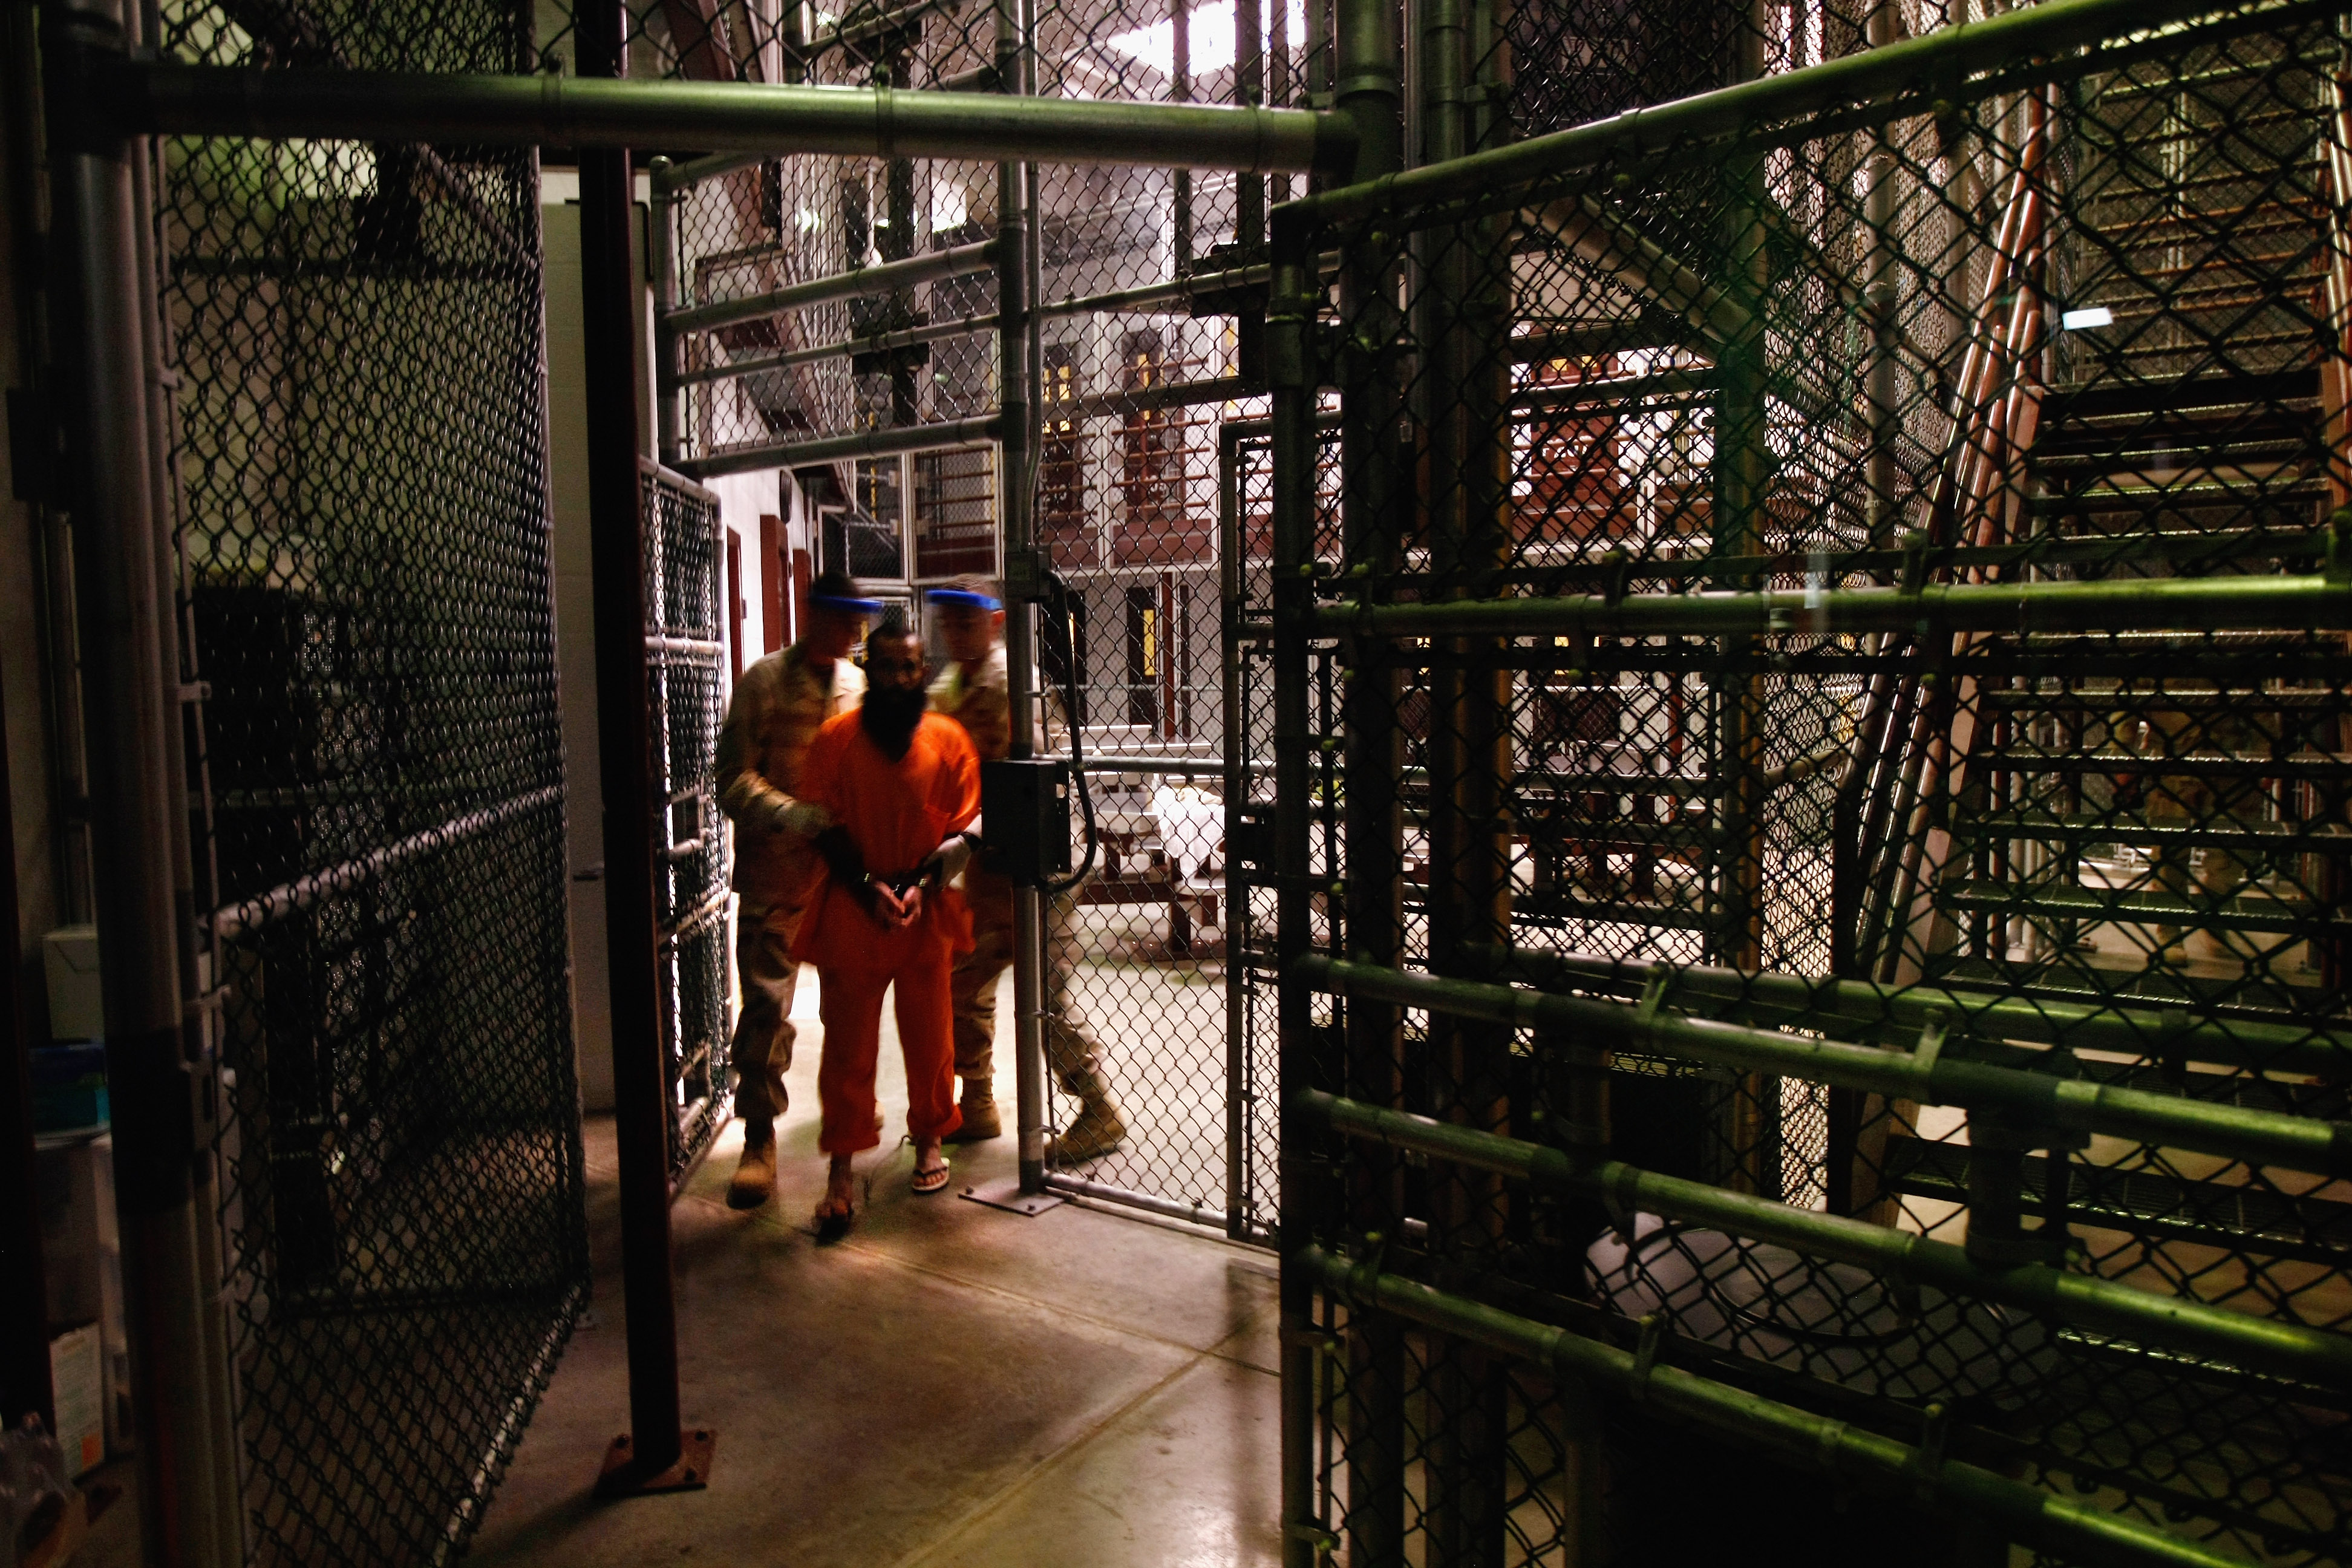 Debate over Gitmo remains highly charged as 9/11 anniversary nears